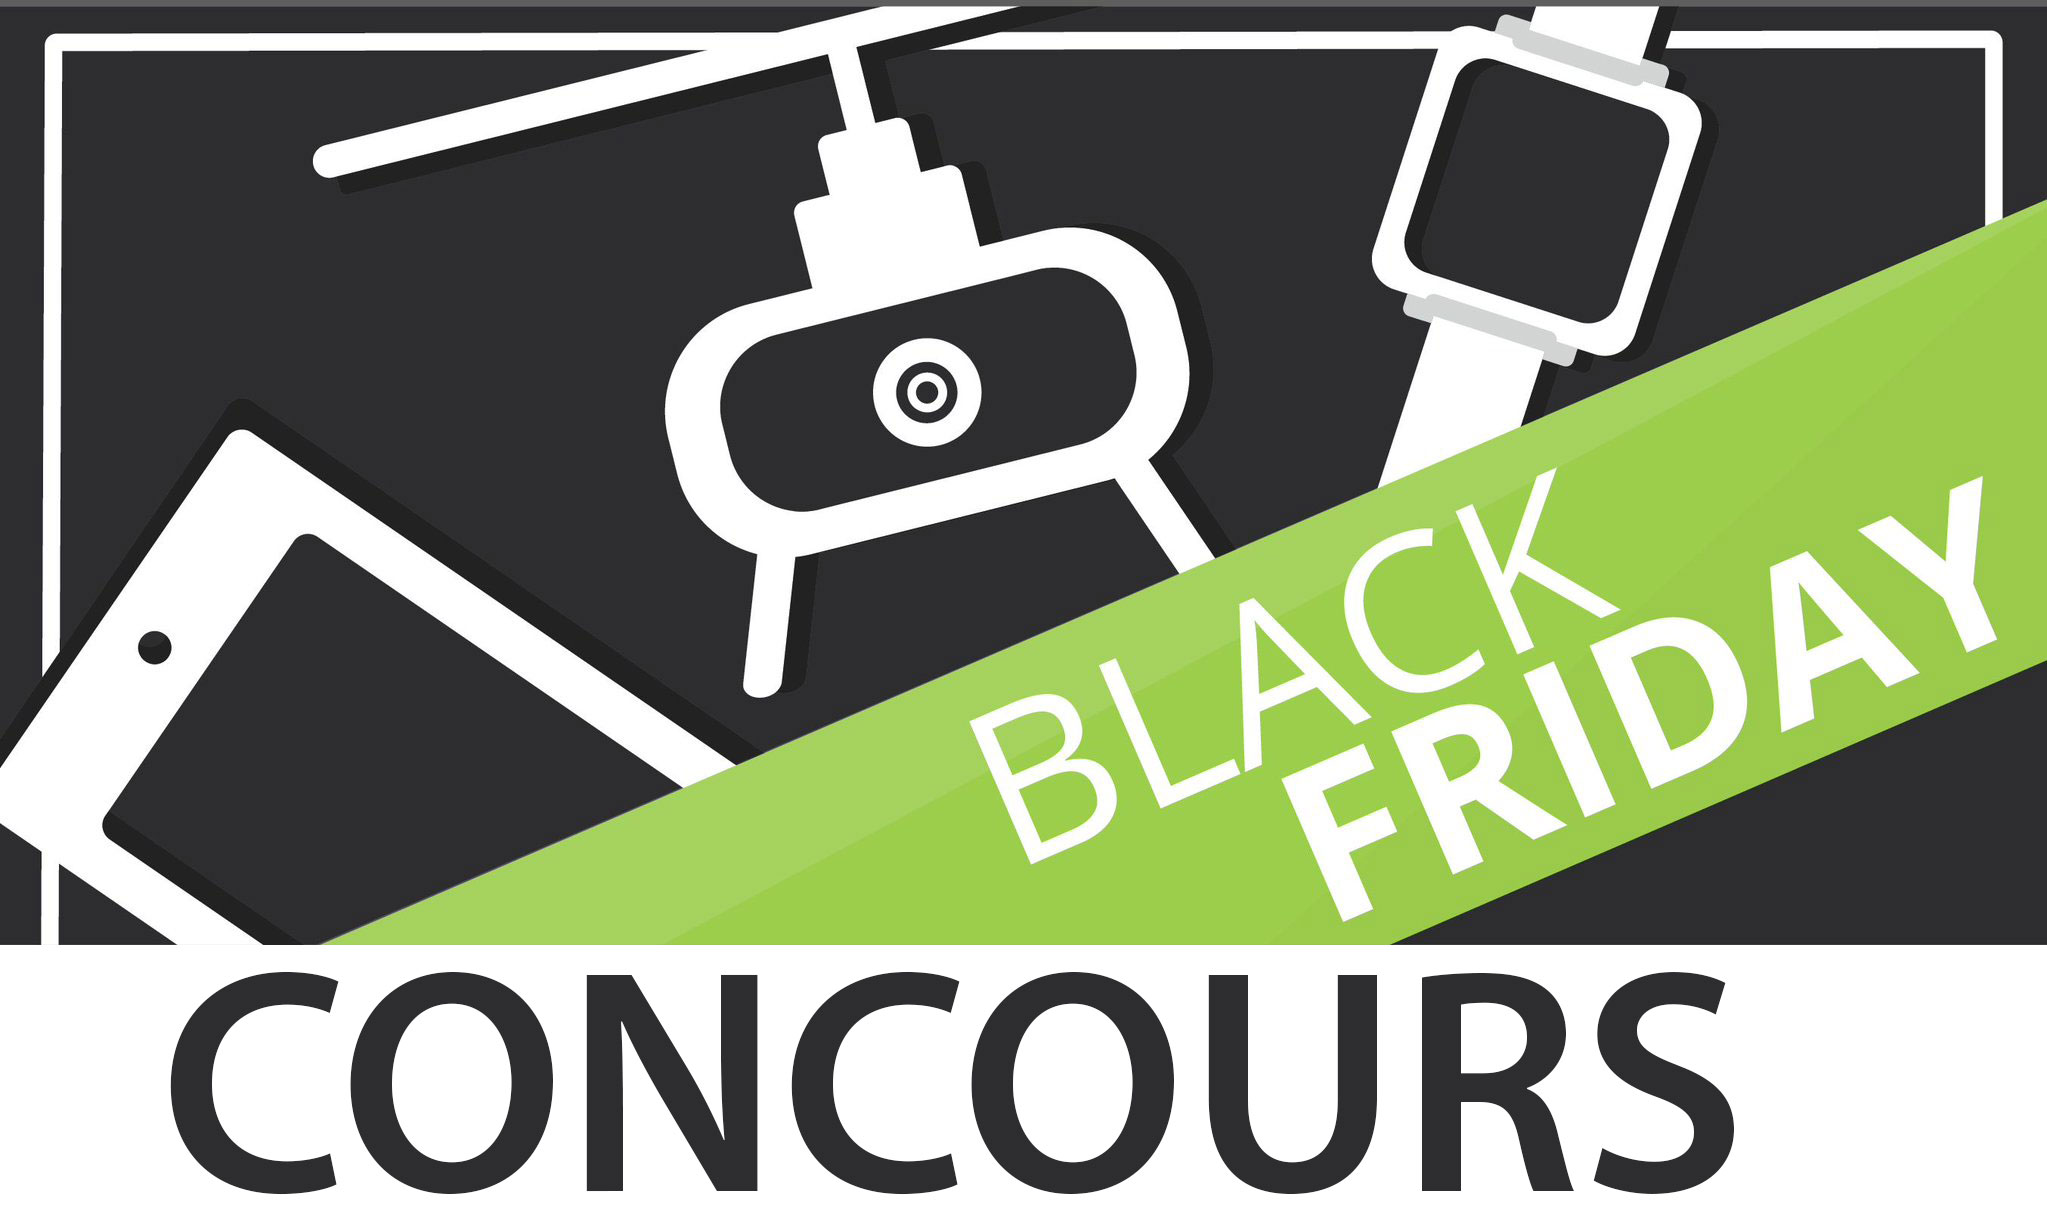 jeu concours black friday remportez un smartphone d 39 une valeur de 500 euros frandroid. Black Bedroom Furniture Sets. Home Design Ideas